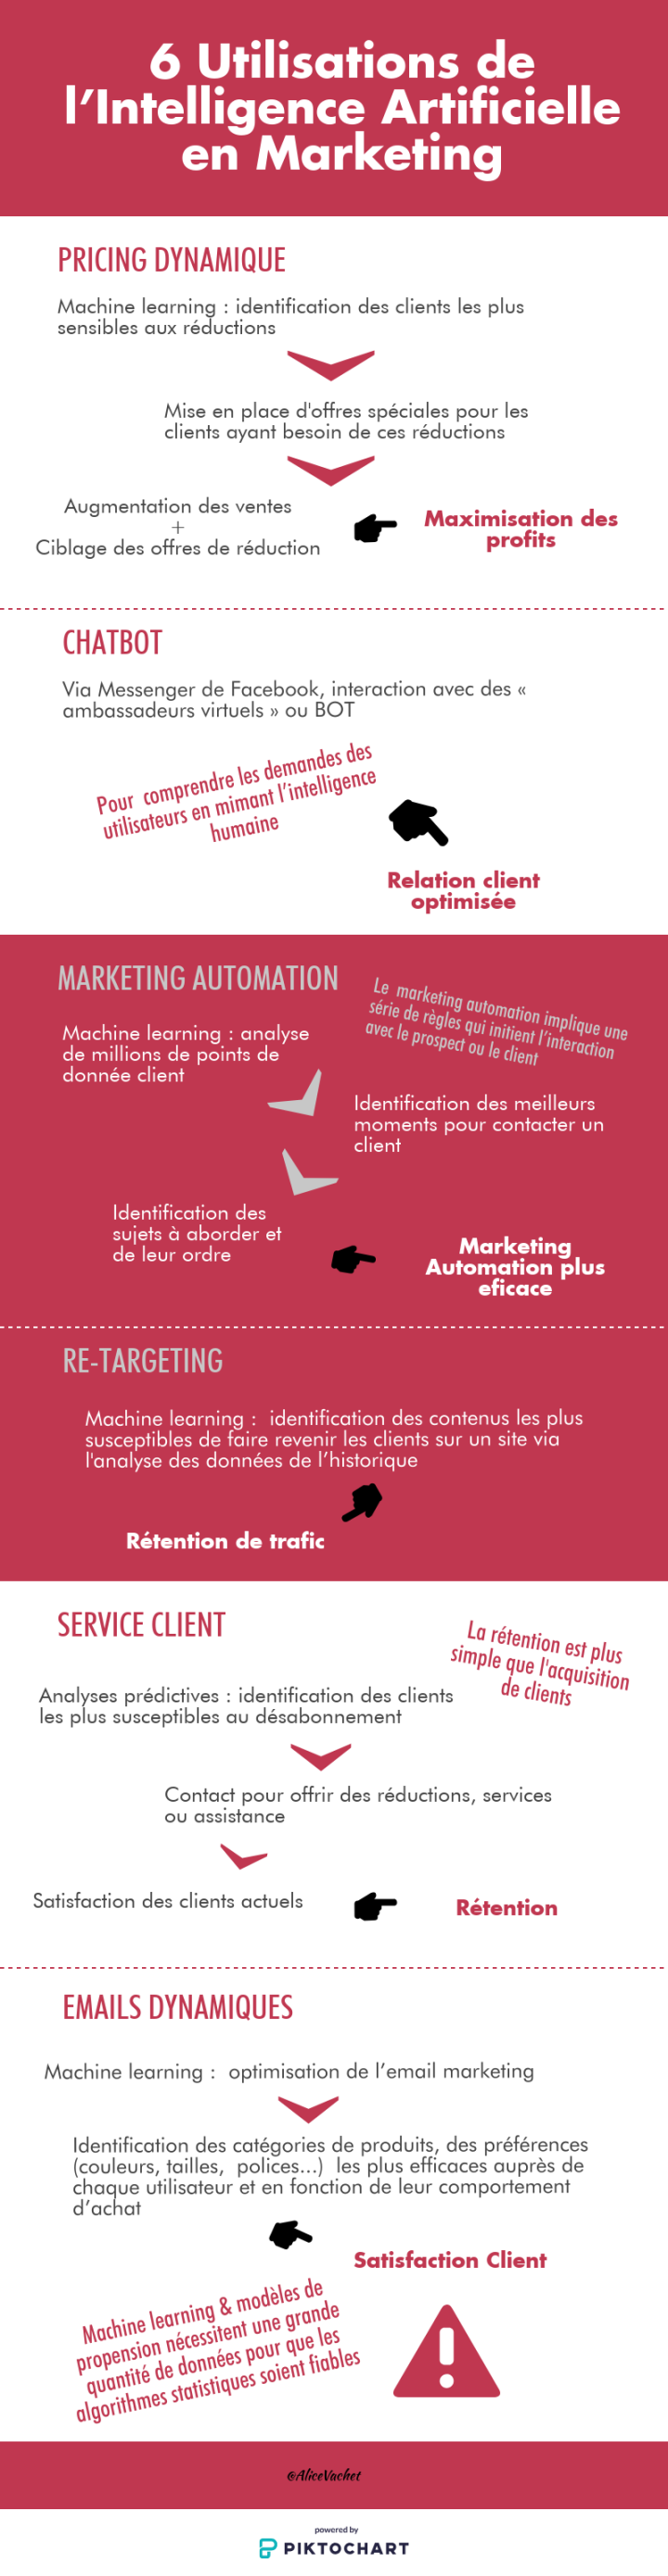 [Infographie] IA : 6 Utilisations de l'Intelligence Artificielle en Marketing